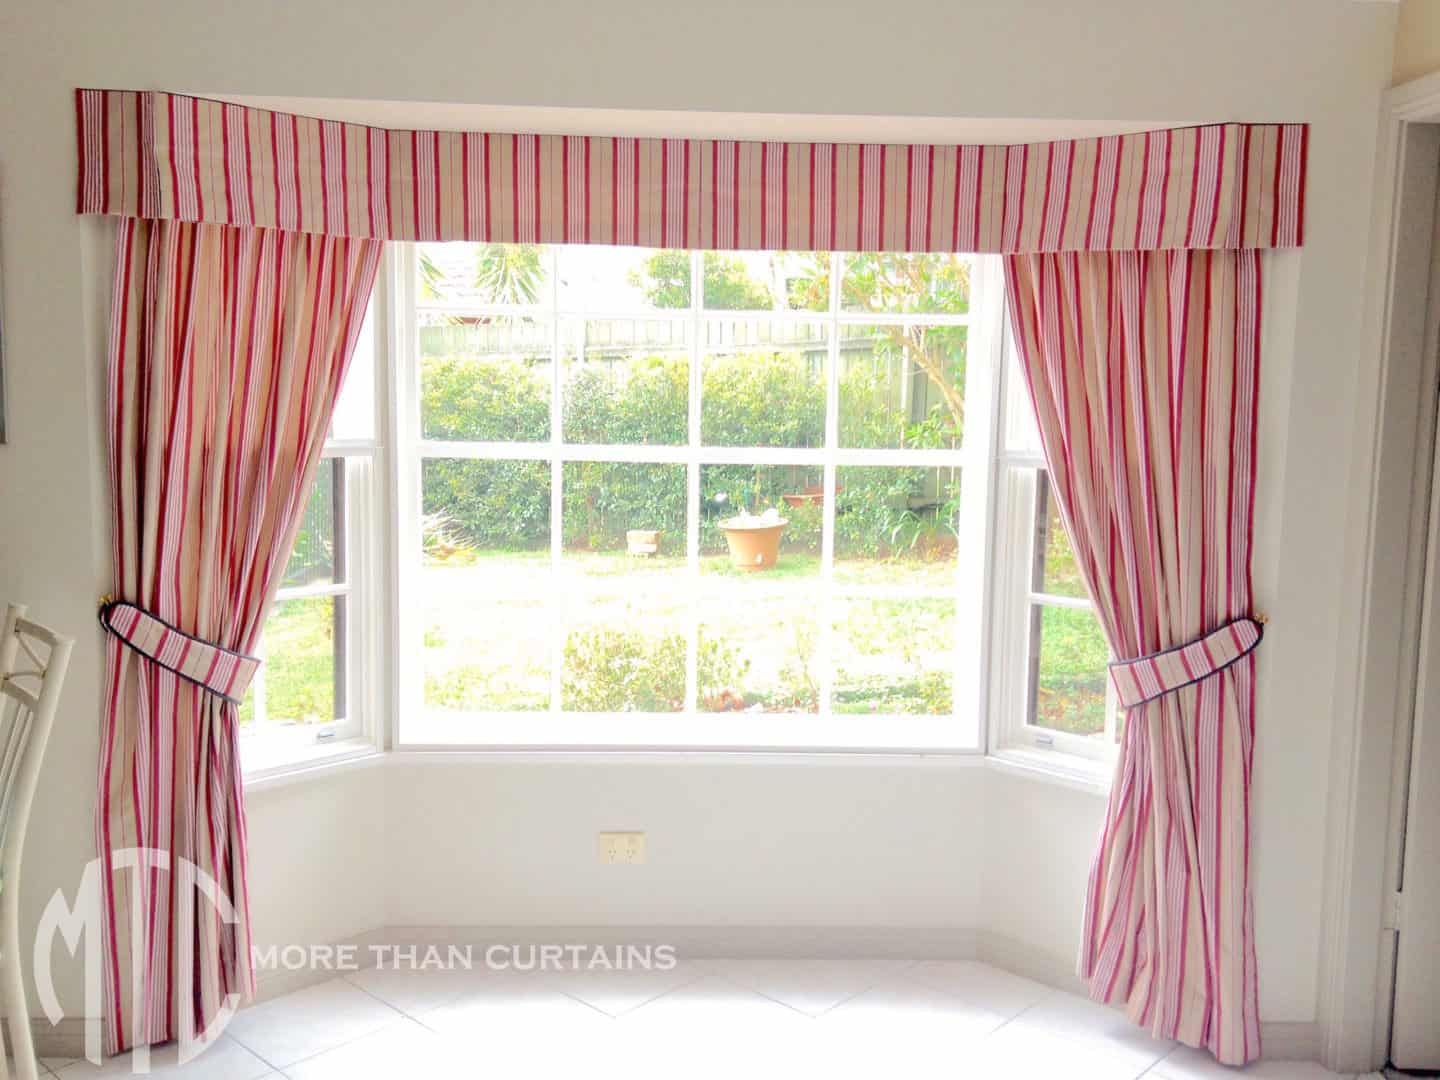 Bay Window Box Pleat Valance And Side Drapes Thompson S Corner More Than Curtains